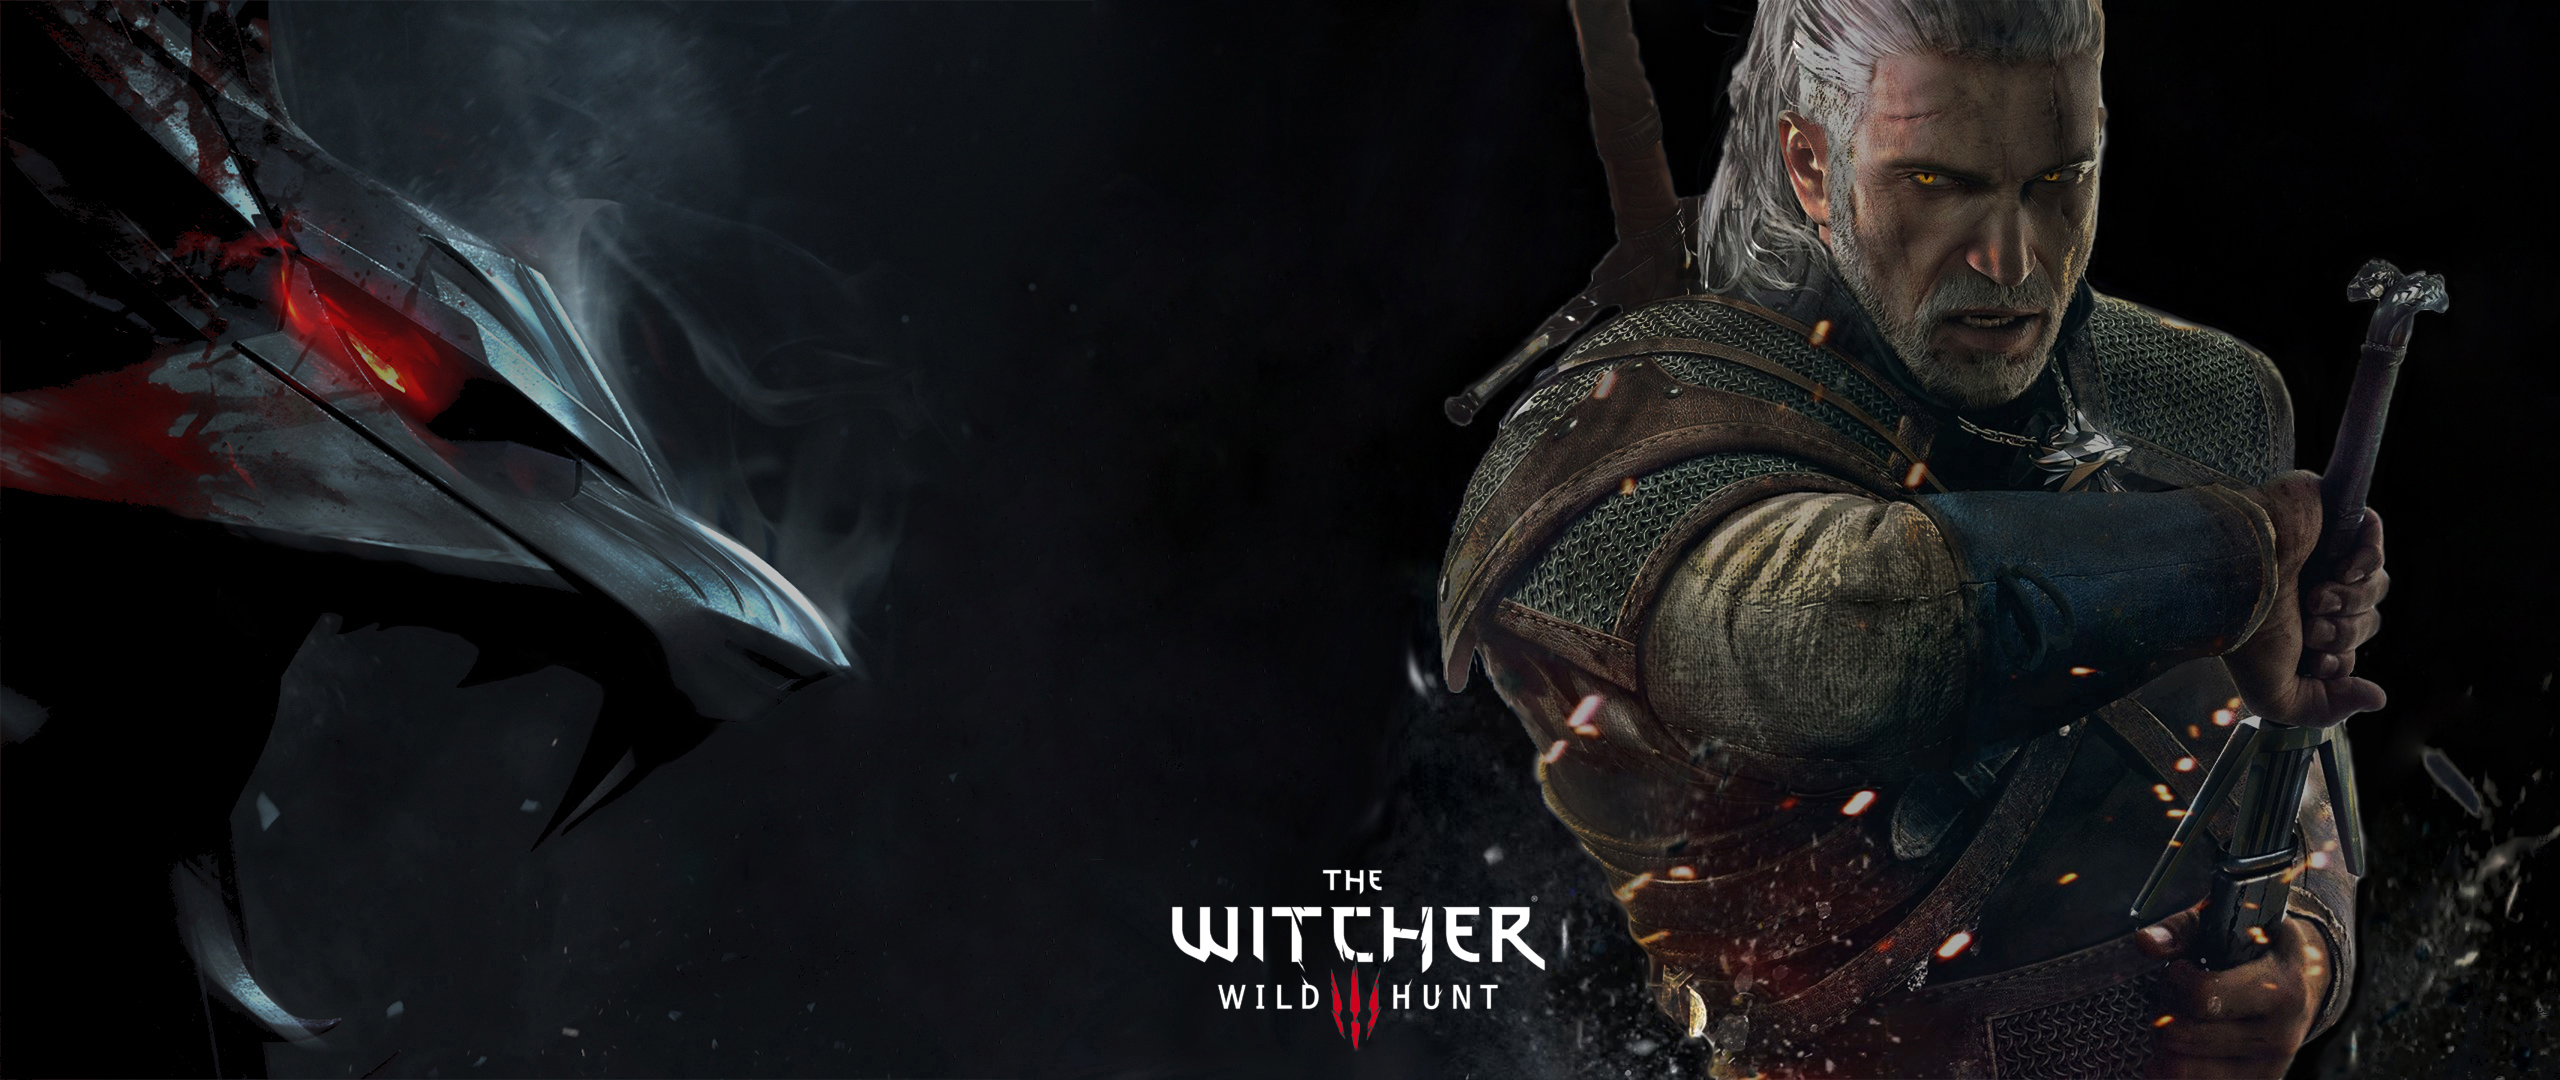 how to start path of warriors witcher 3